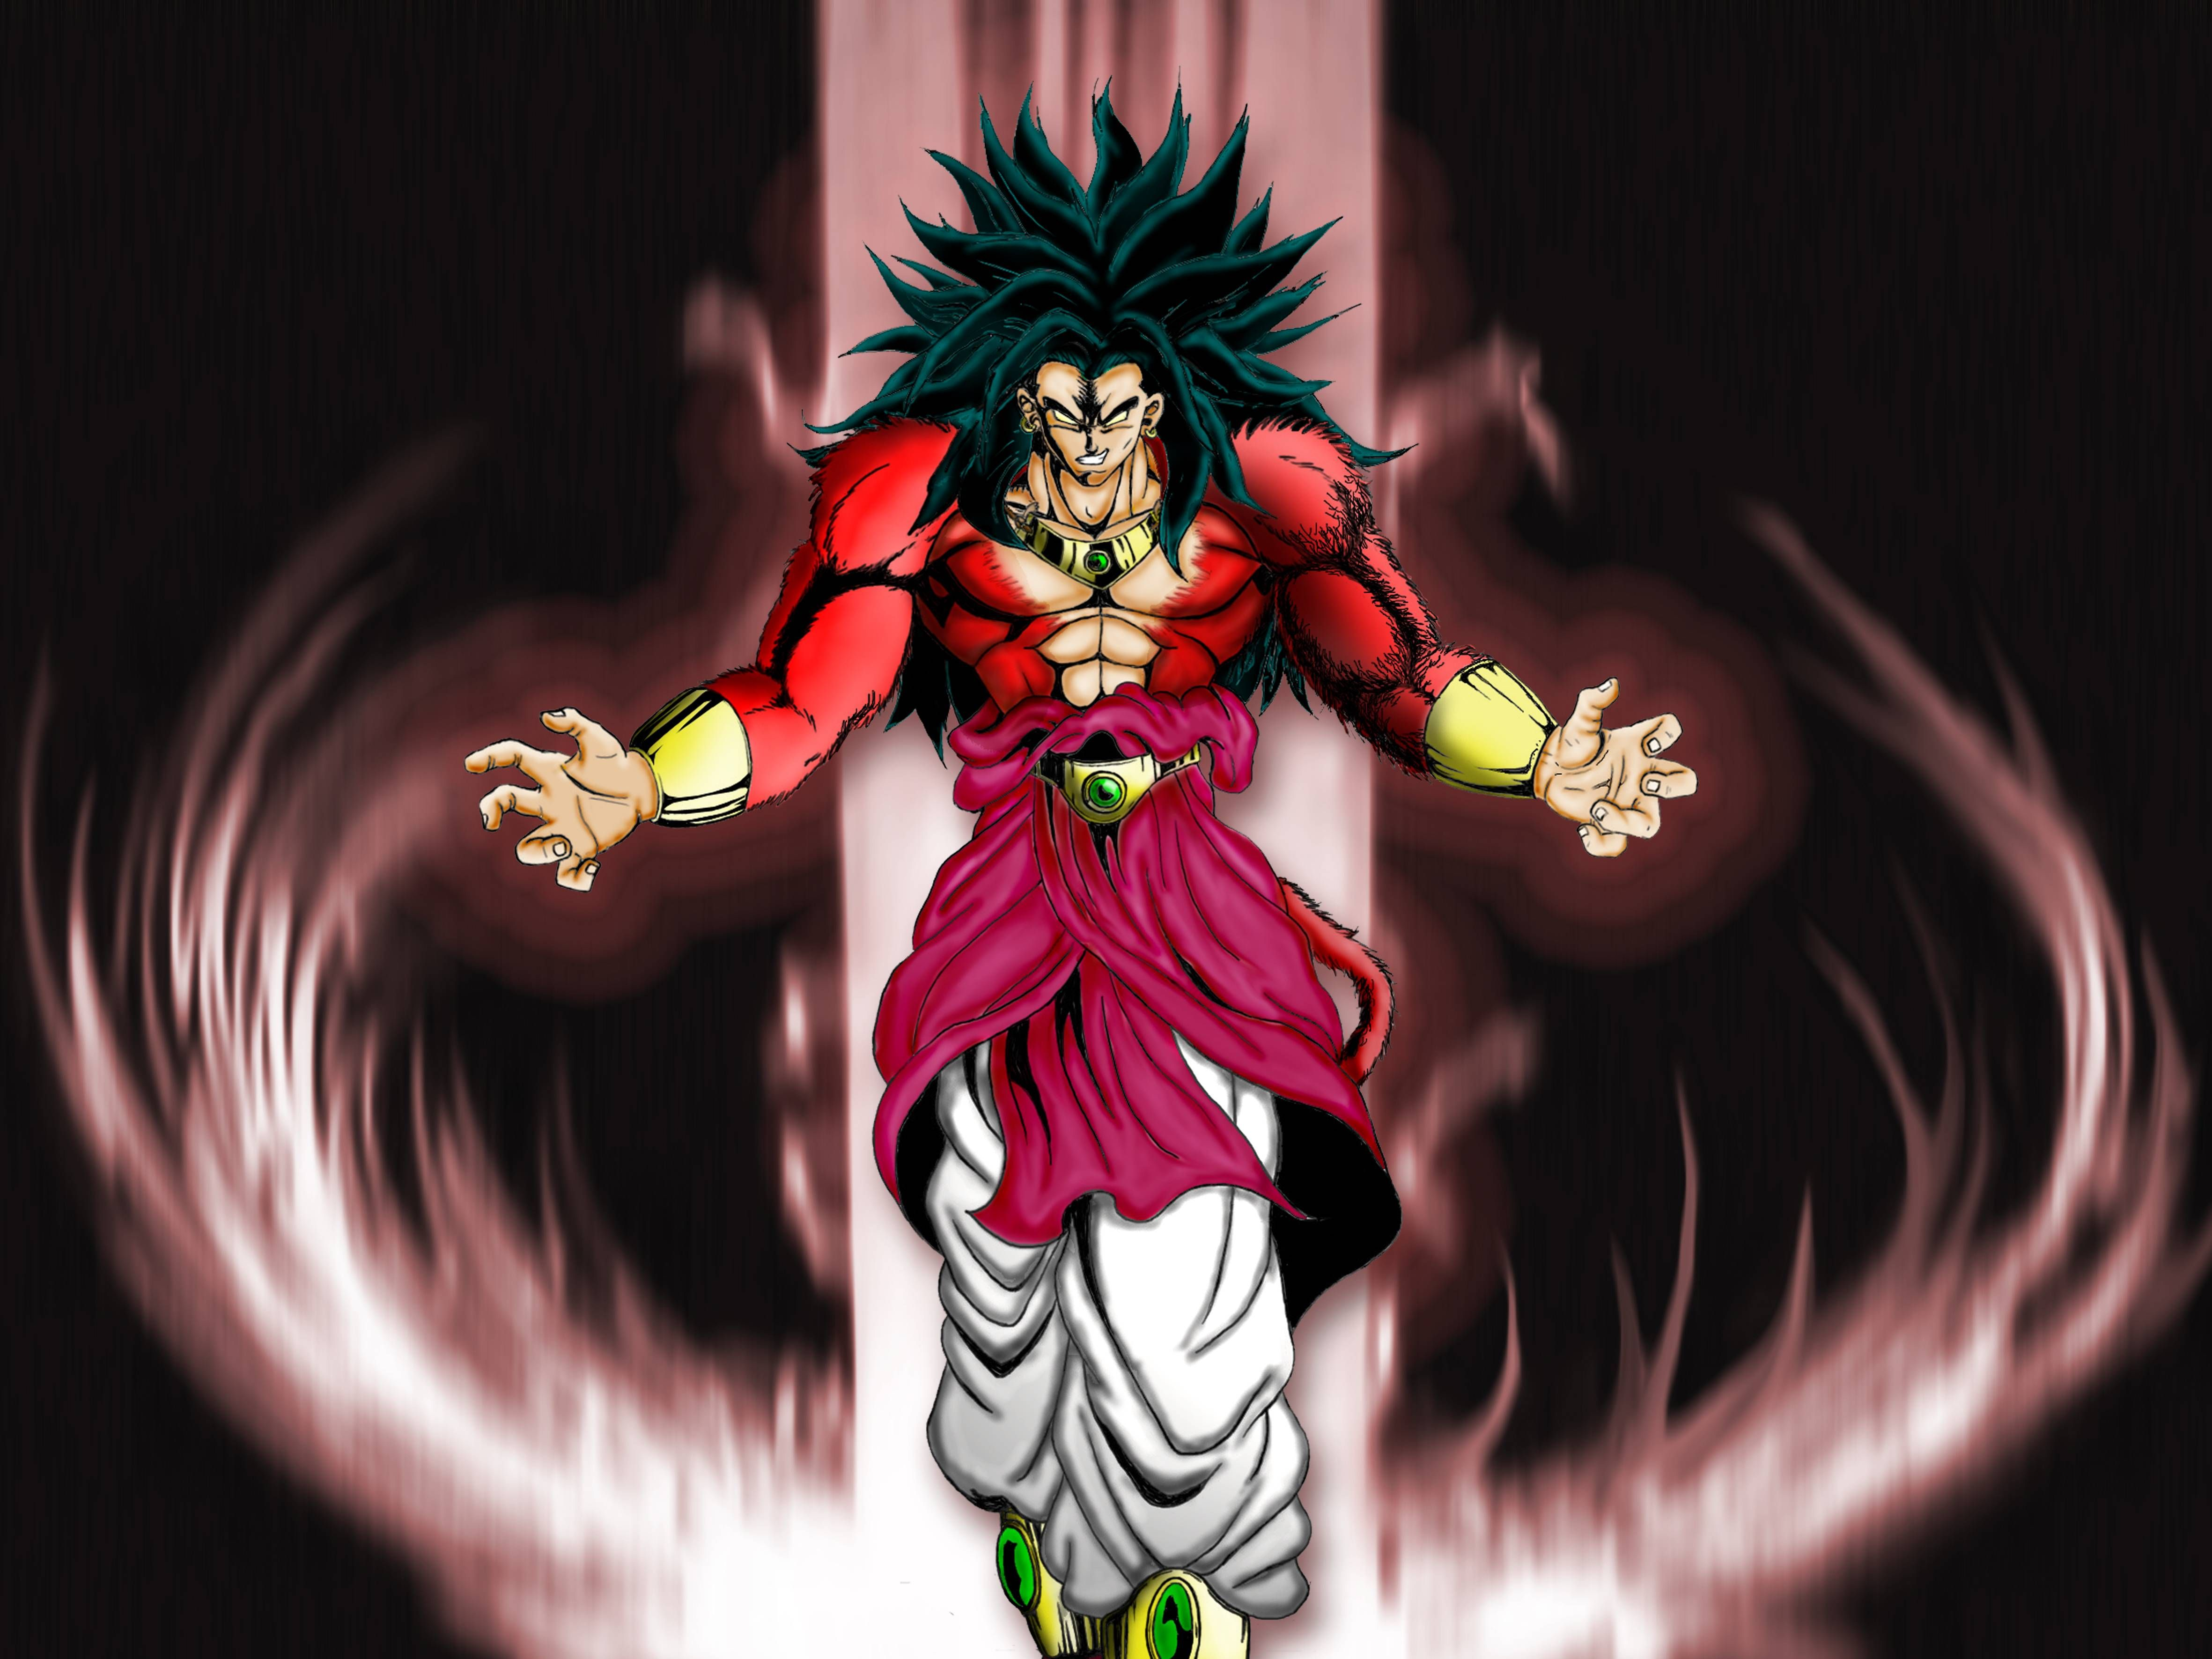 Dragon Ball Z Broly Wallpaper Picture For Free Wallpaper Cartoon